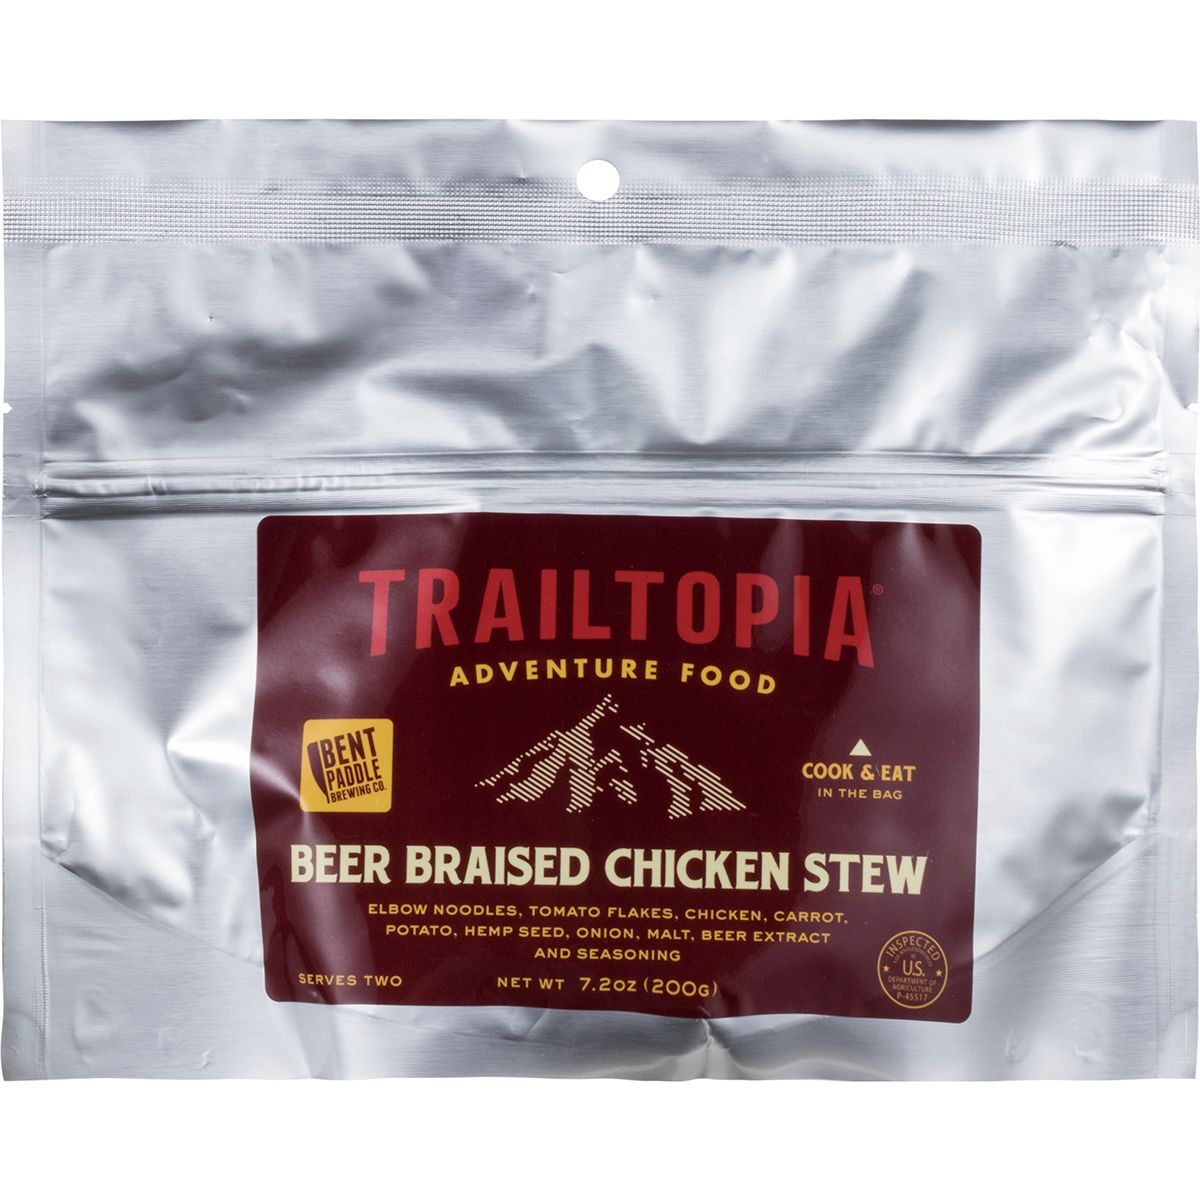 Trailtopia Beer Braised Chicken Stew